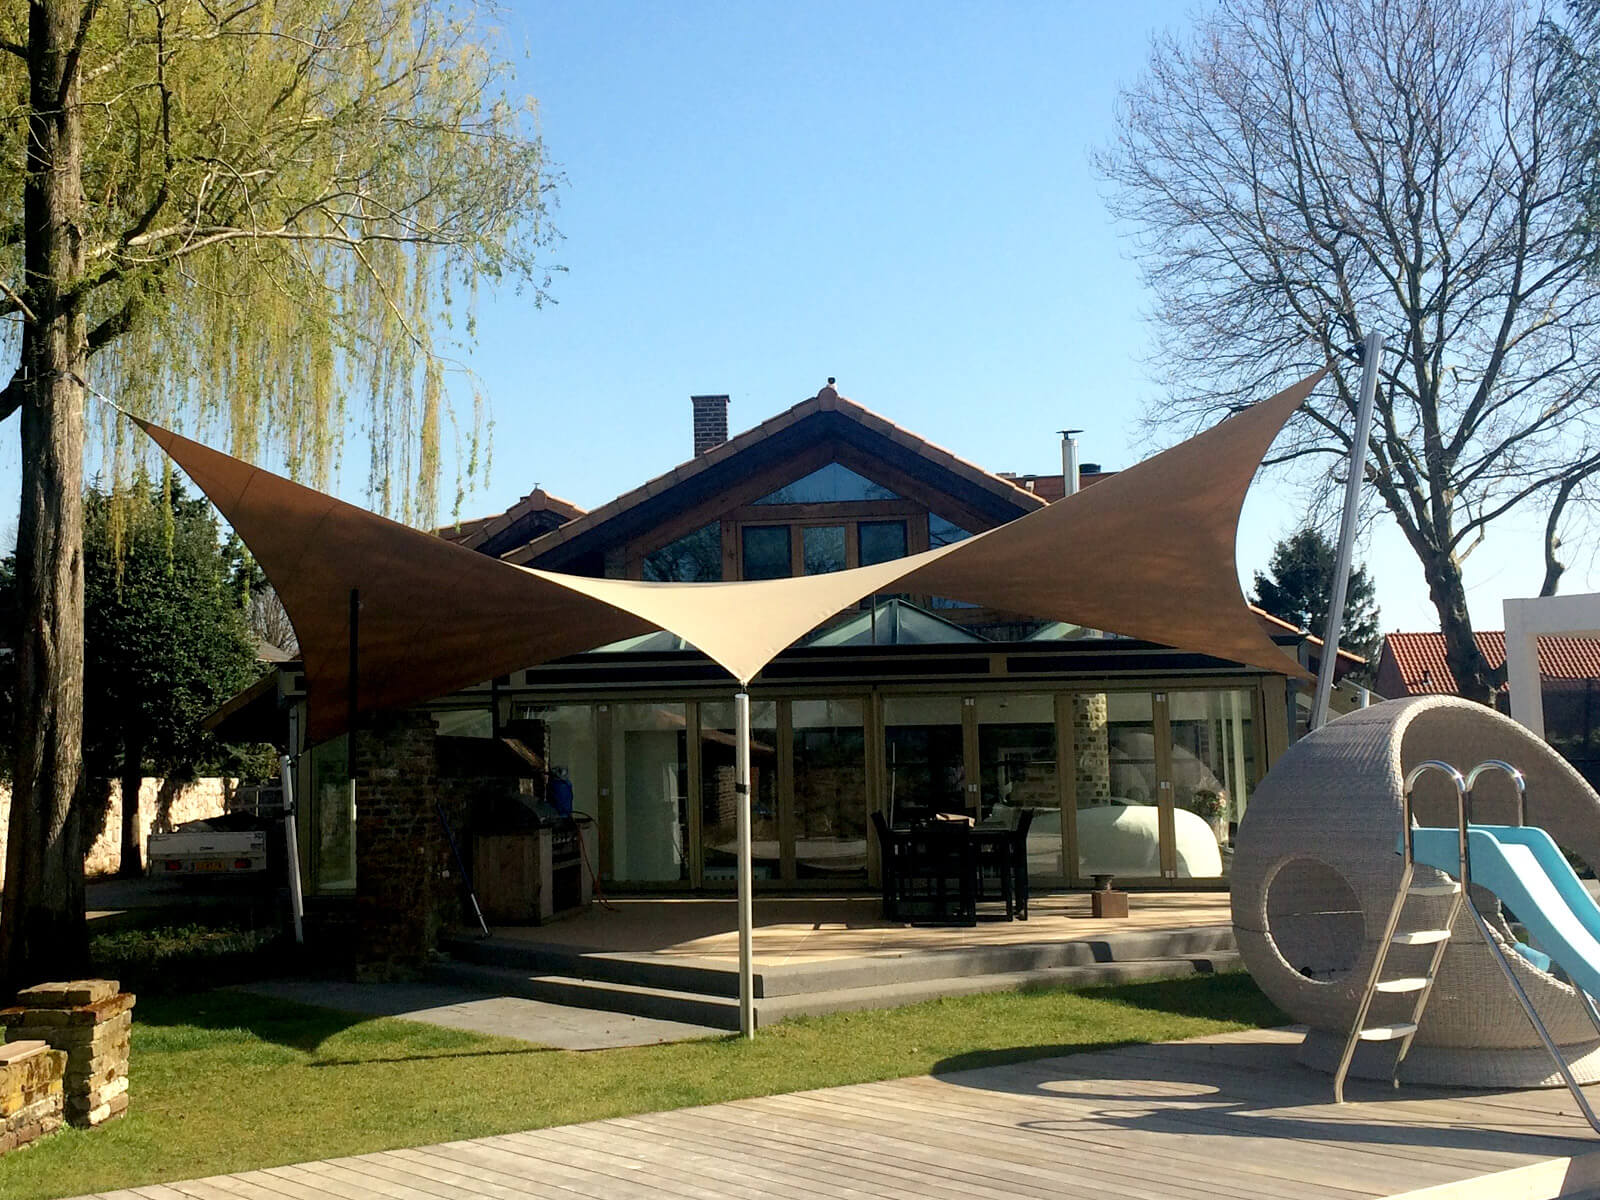 Our textile roof carport is Tailor based on your aesthetic and functional needs